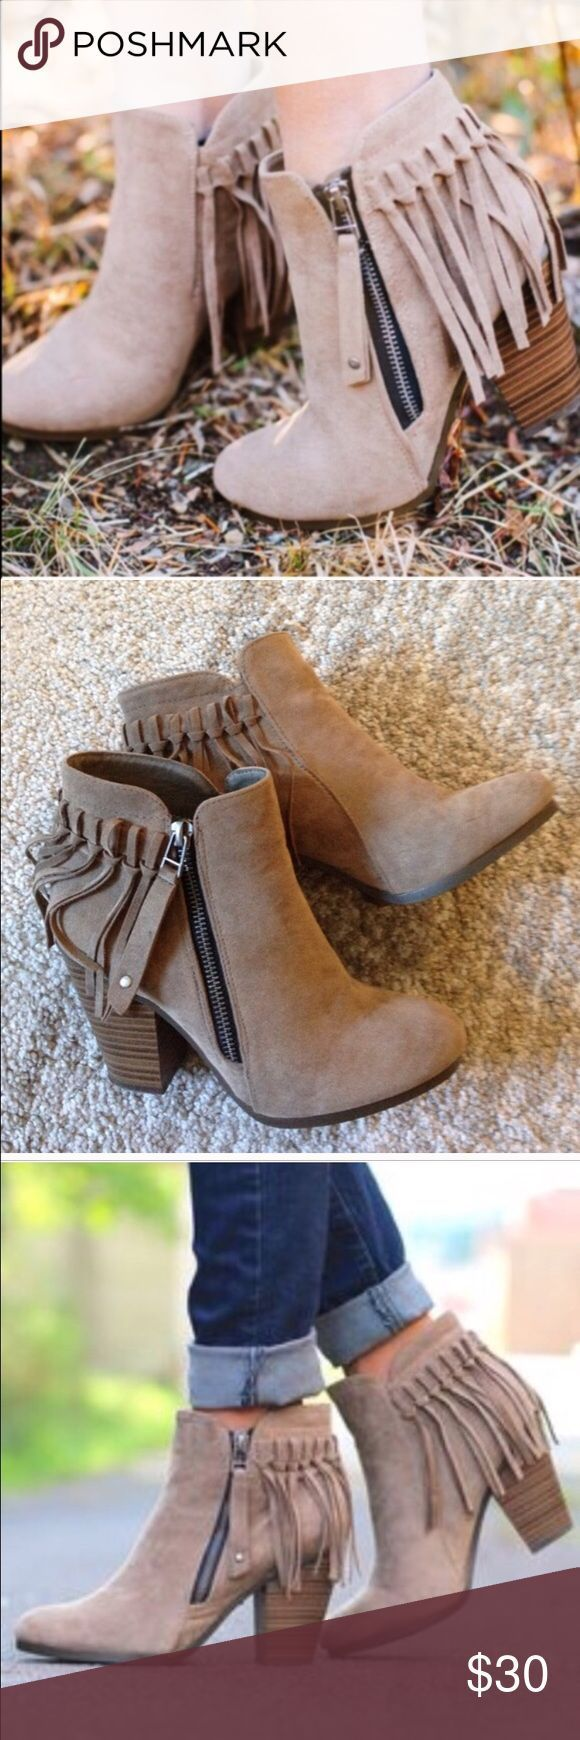 Brand new Beige Fringe side zip bootie size 6.5 Selling this brand new with box beige fringe zip side bootie size 6.5 very cute and pretty just have -...